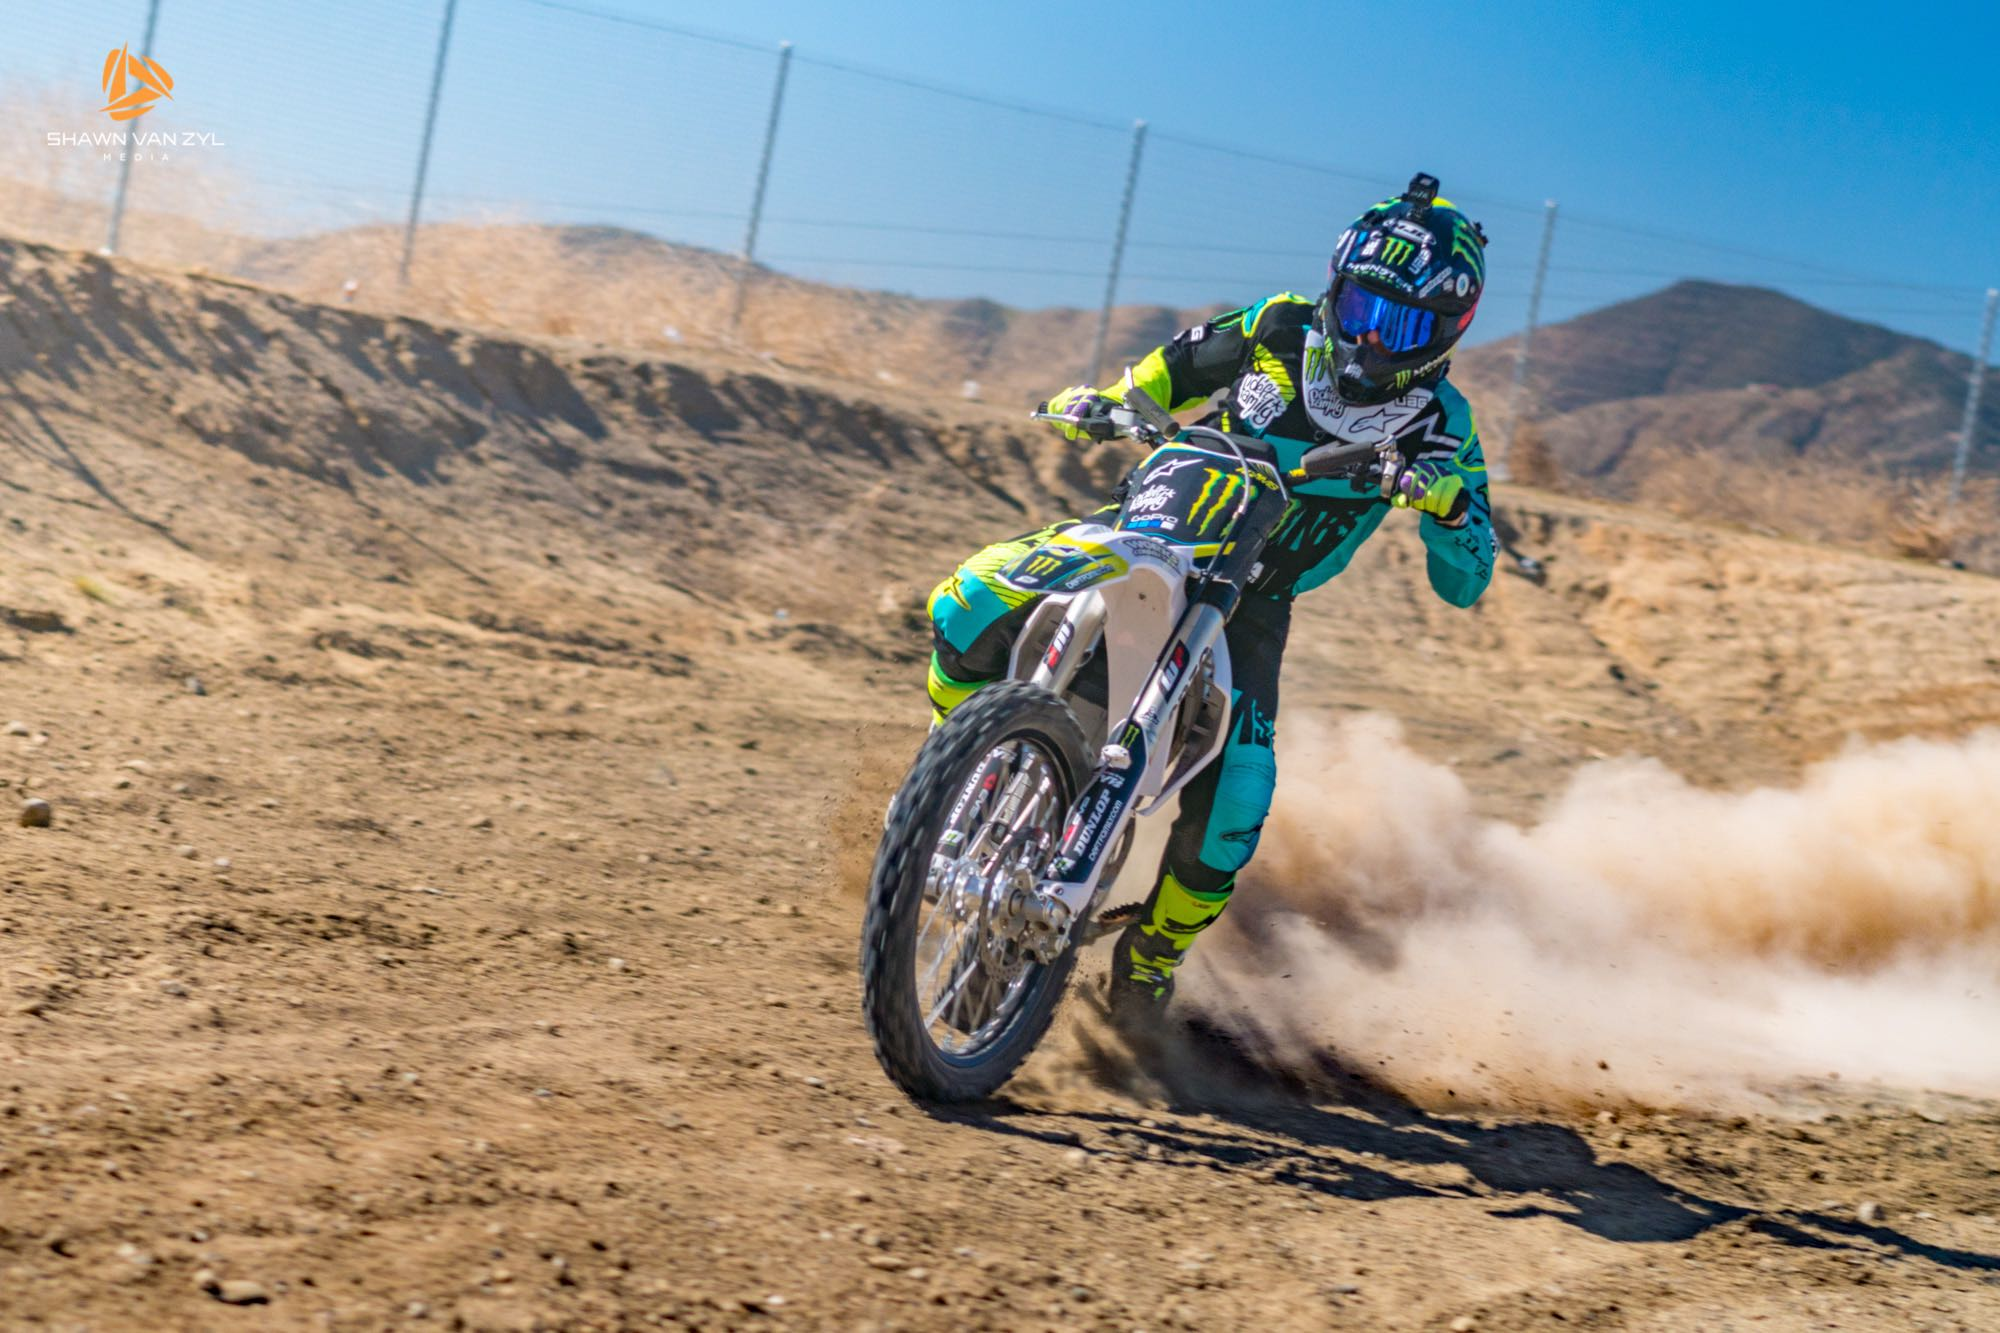 We interview FMX rider Nate Adams about riding the Alta Motors electric bike